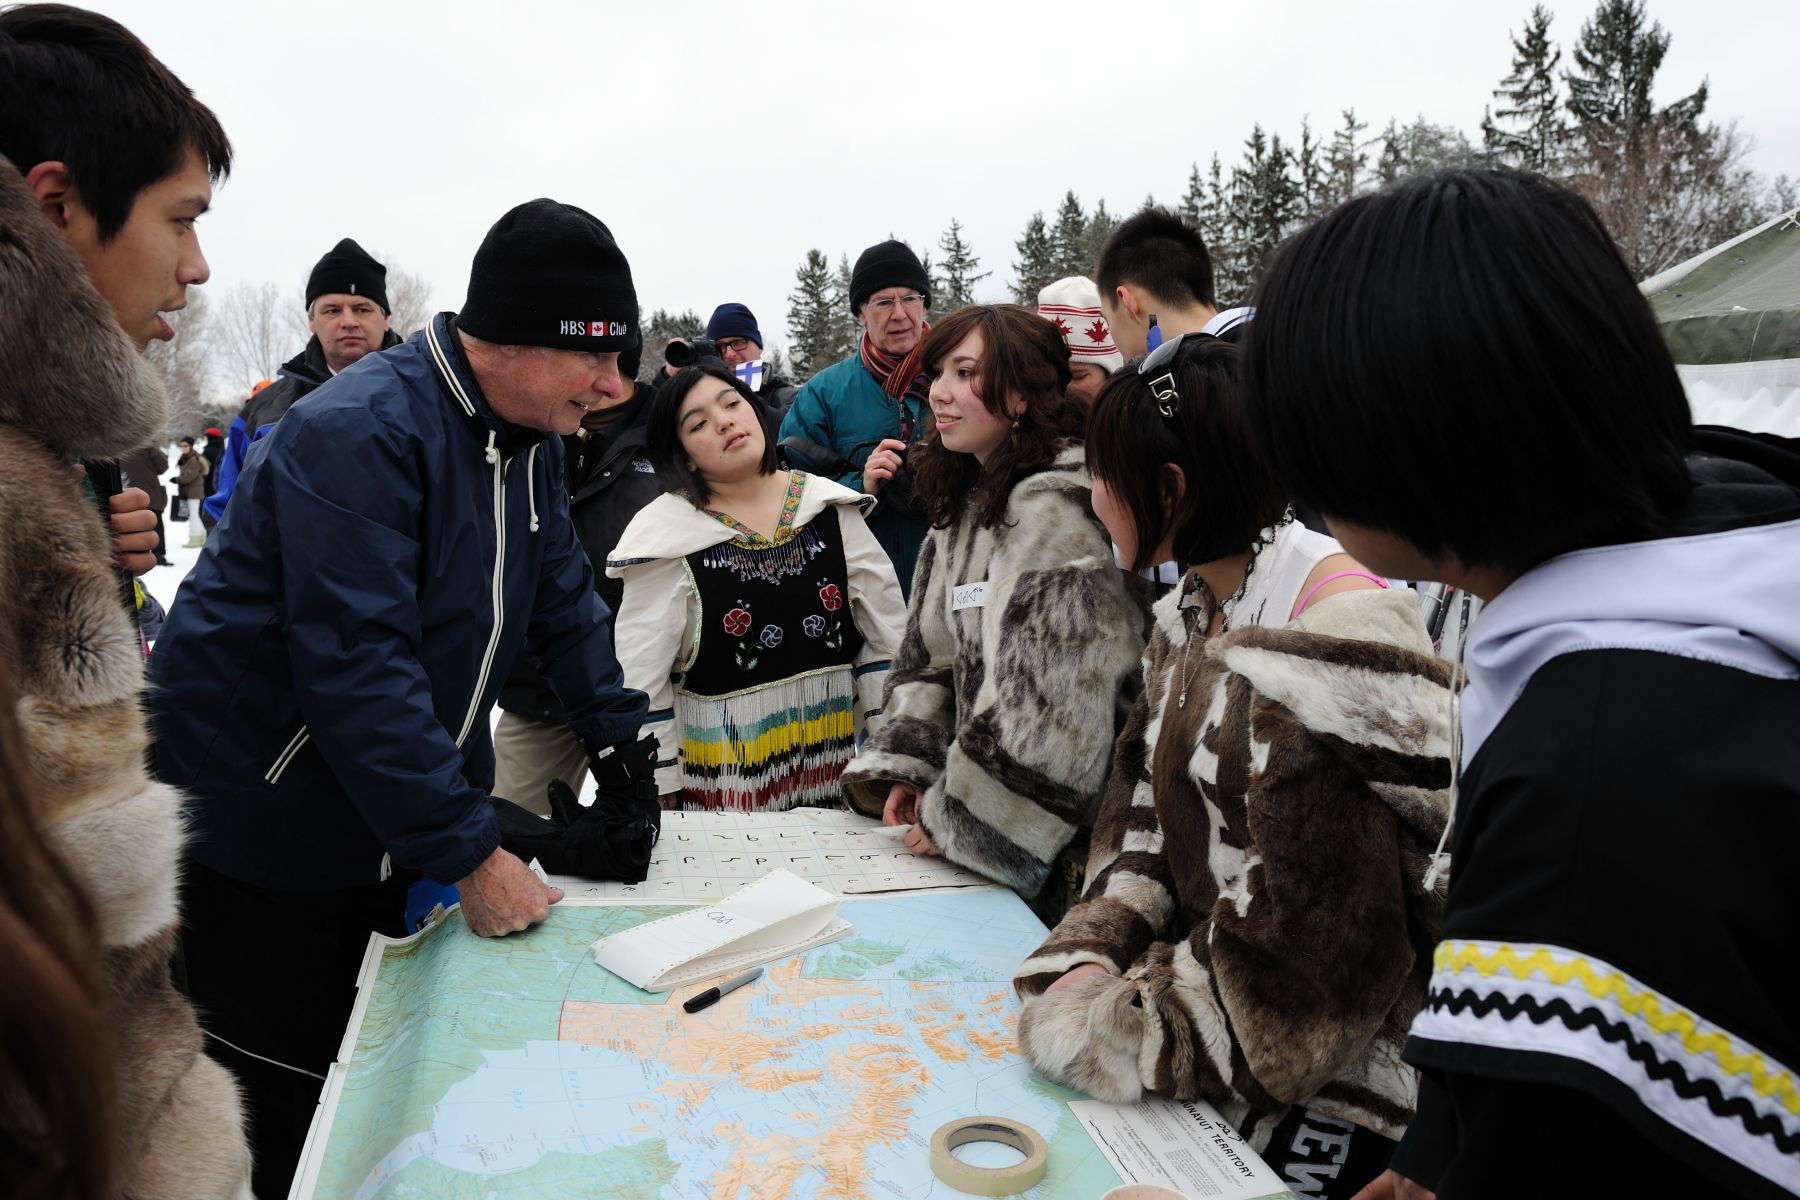 The Governor General met with students of Nunavut Sivuniksavut who shared their Inuit culture and language through drumming, dancing, throat singing and winter activities.